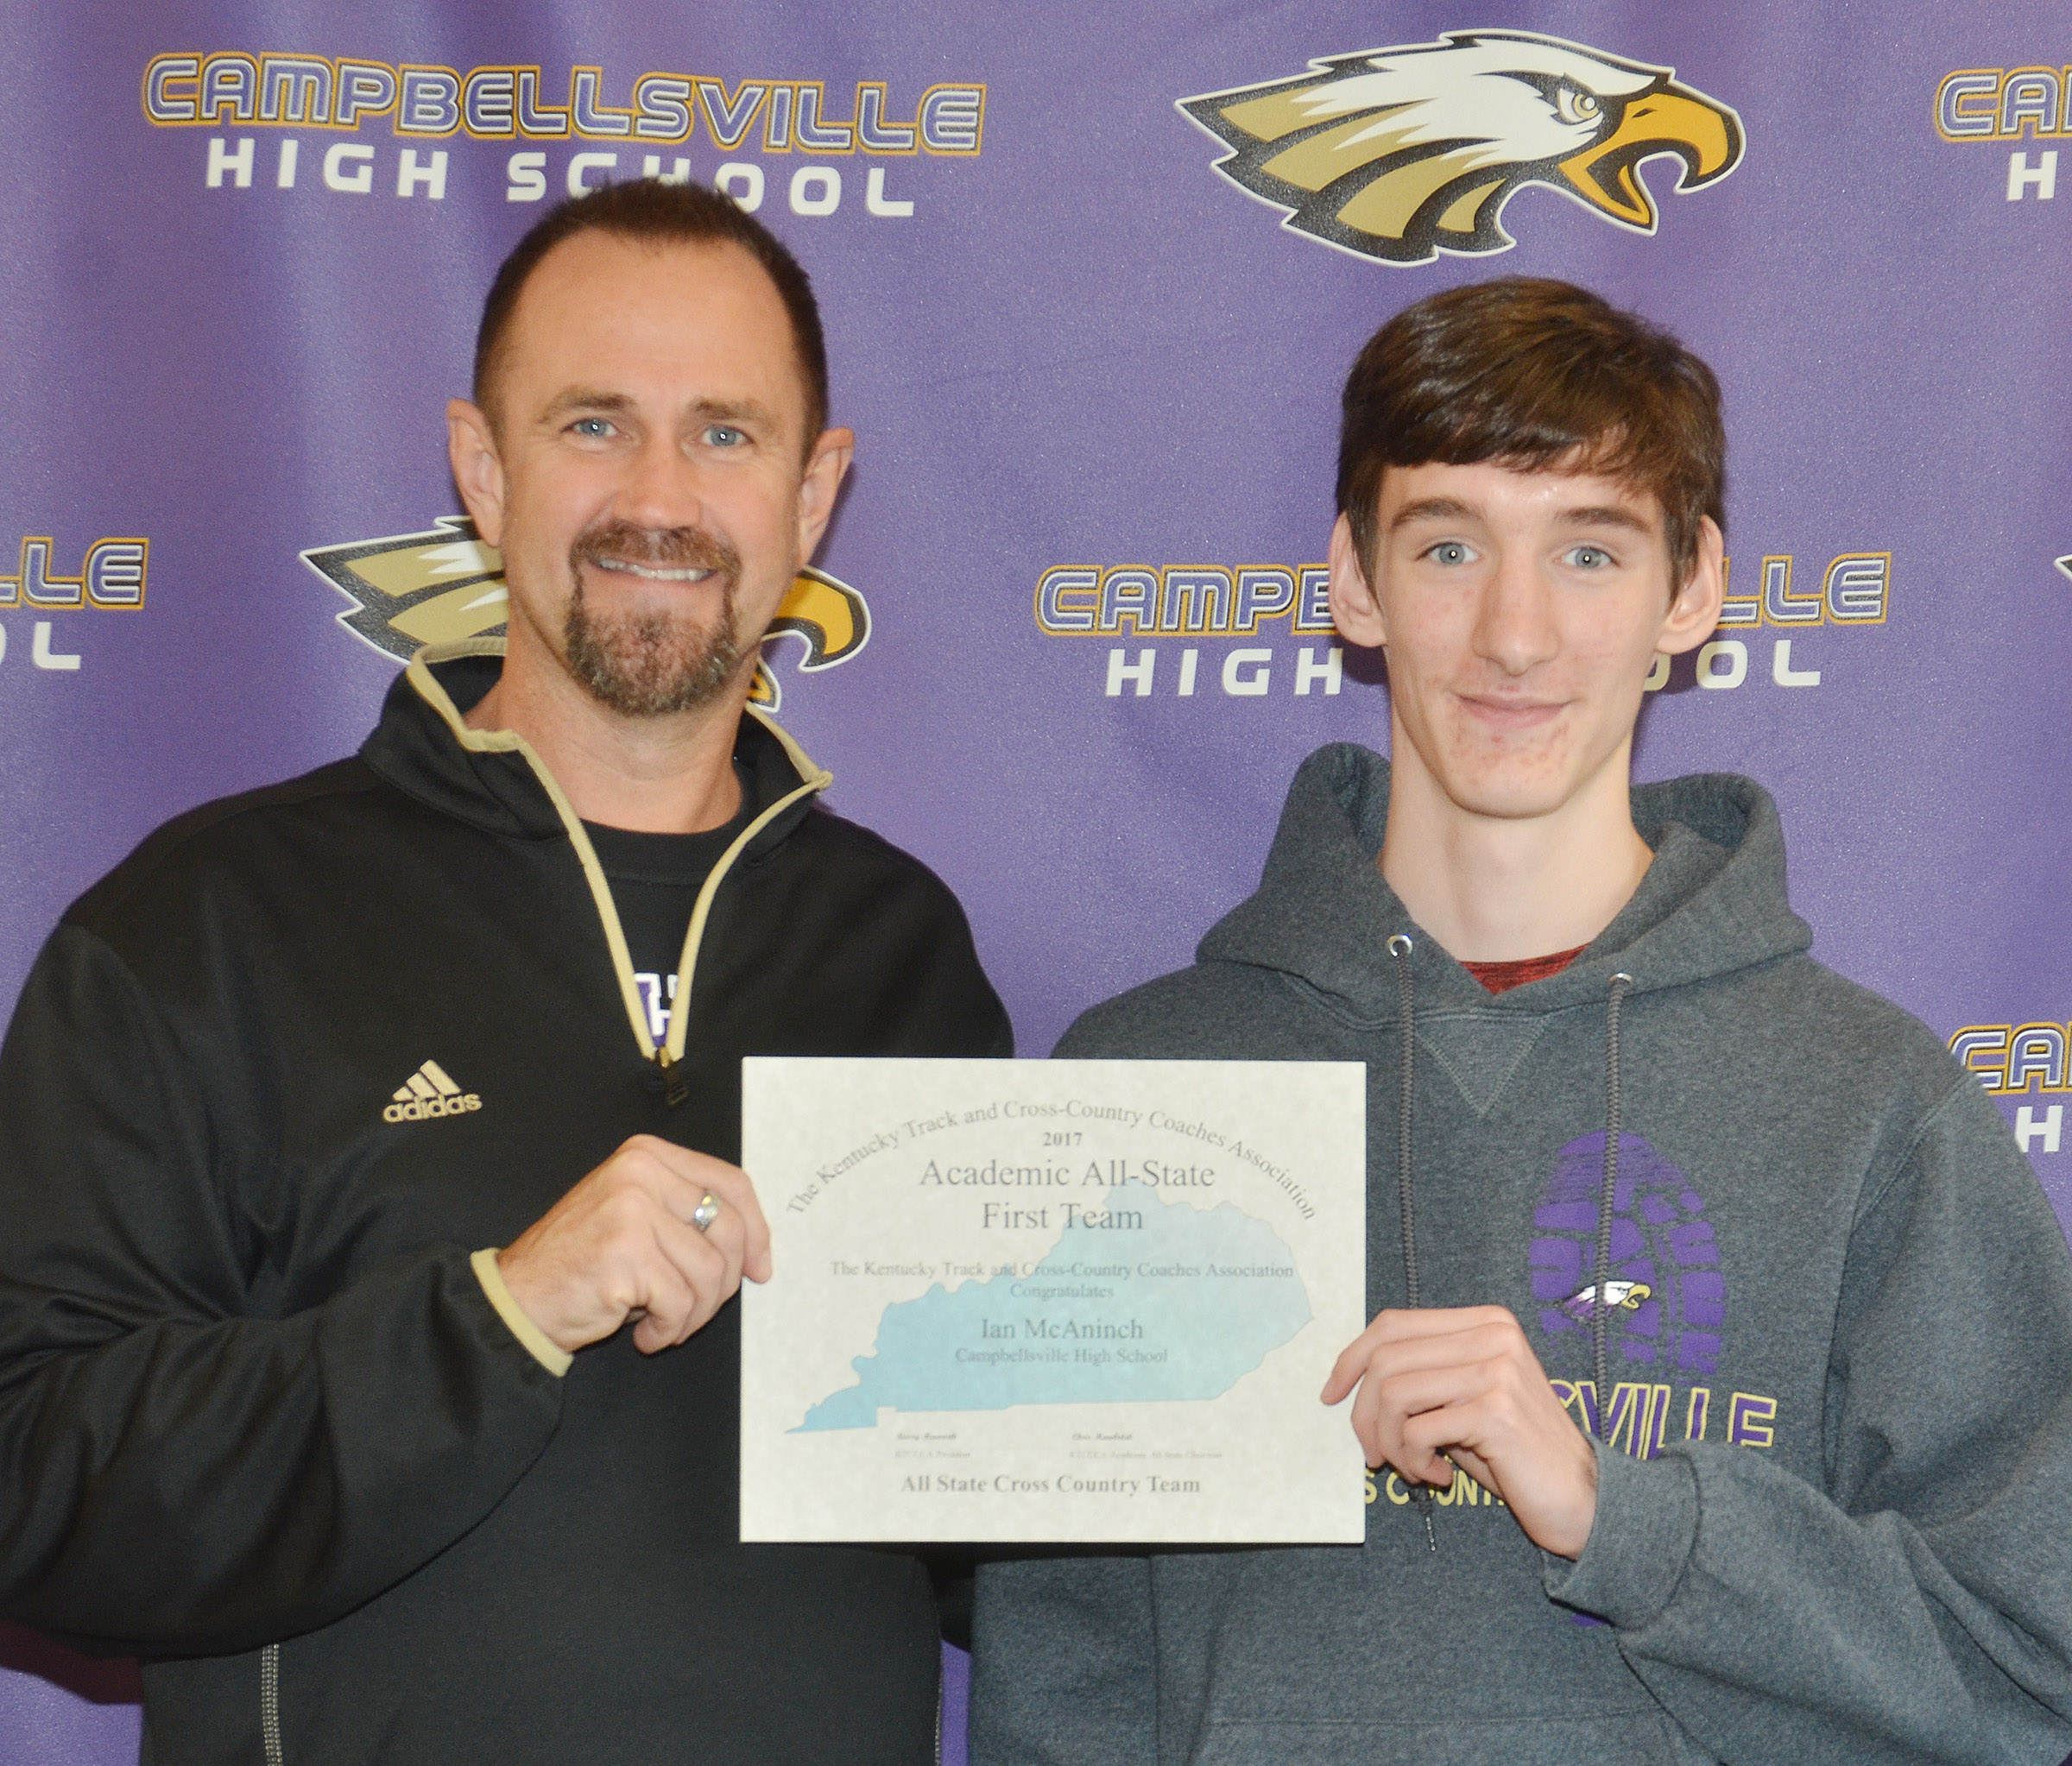 The Kentucky Track and Cross Country Coaches Association recently named Ian McAninch, a CHS junior, at right, to the Academic All-State First Team. At left is CHS cross country coach Steve Doss.